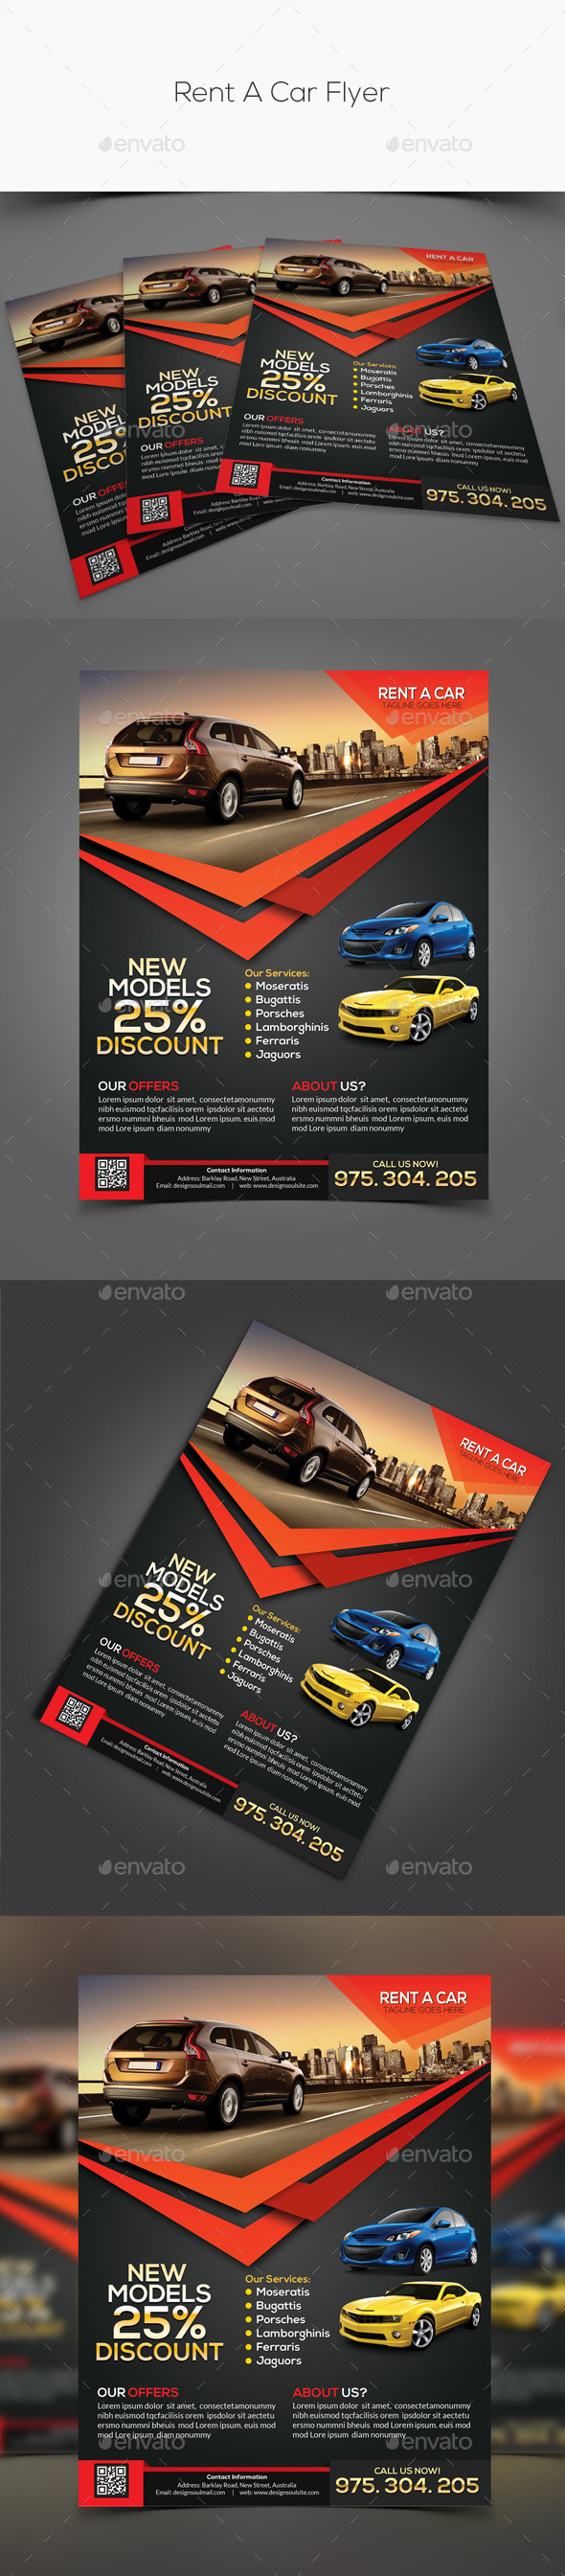 GraphicRiver Rent A Car Flyer 11226212